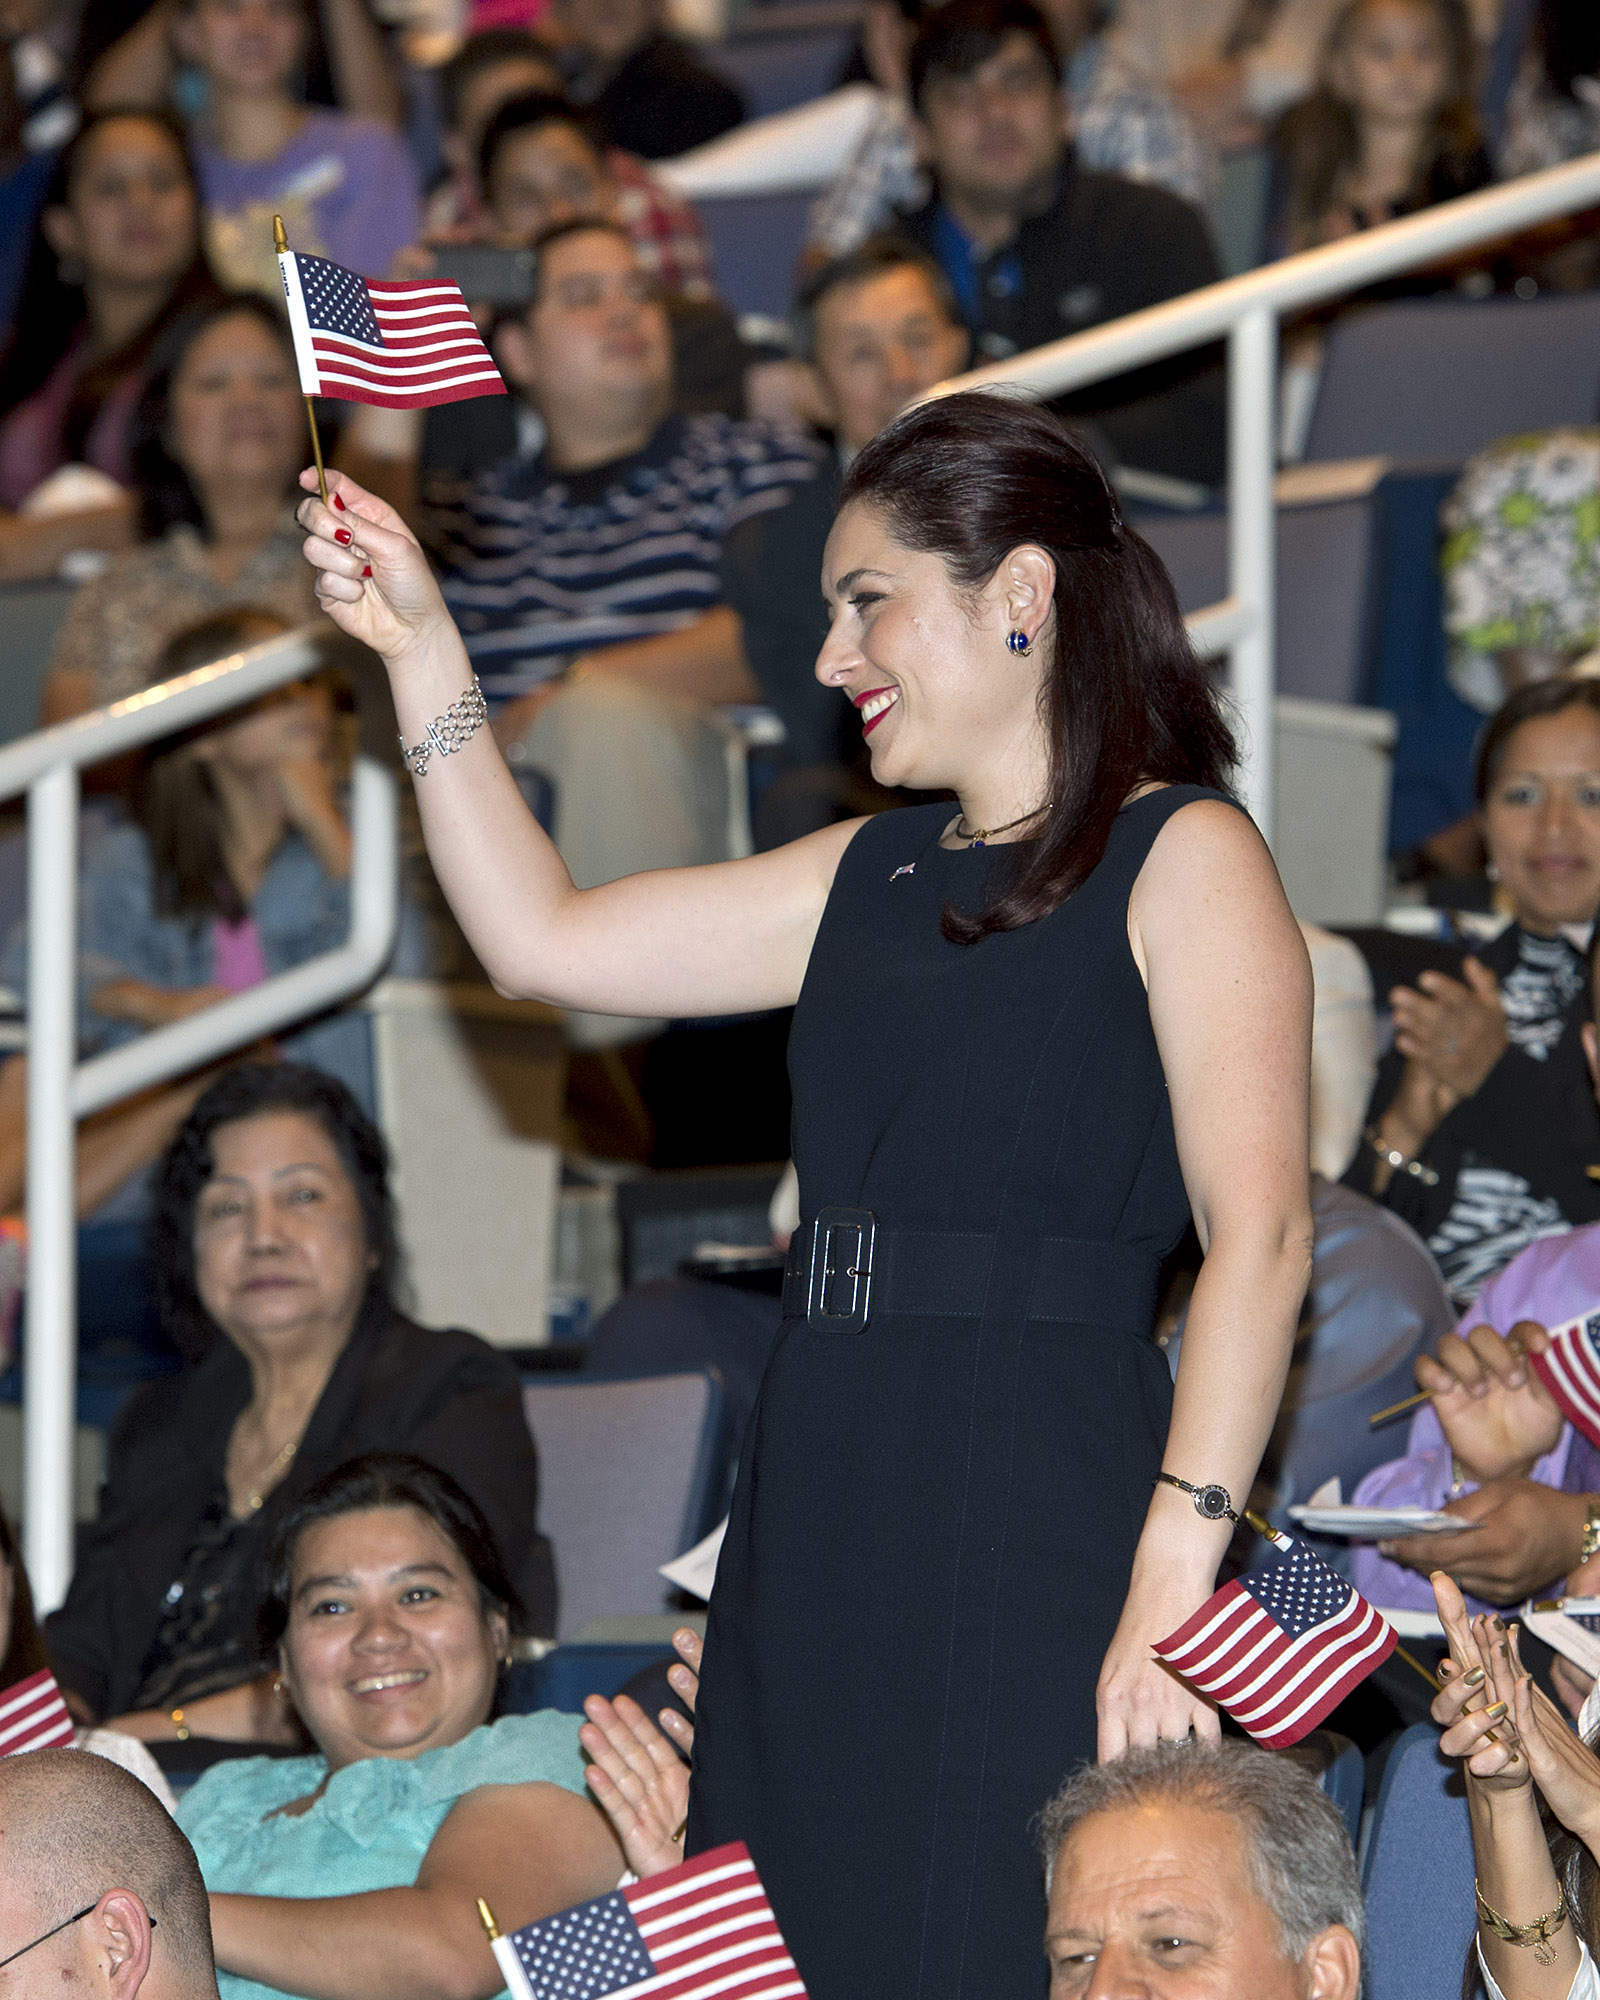 The University of Central Oklahoma hosted a naturalization ceremony Friday, Sept. 28 for 125 new American citizens from 33 countries.